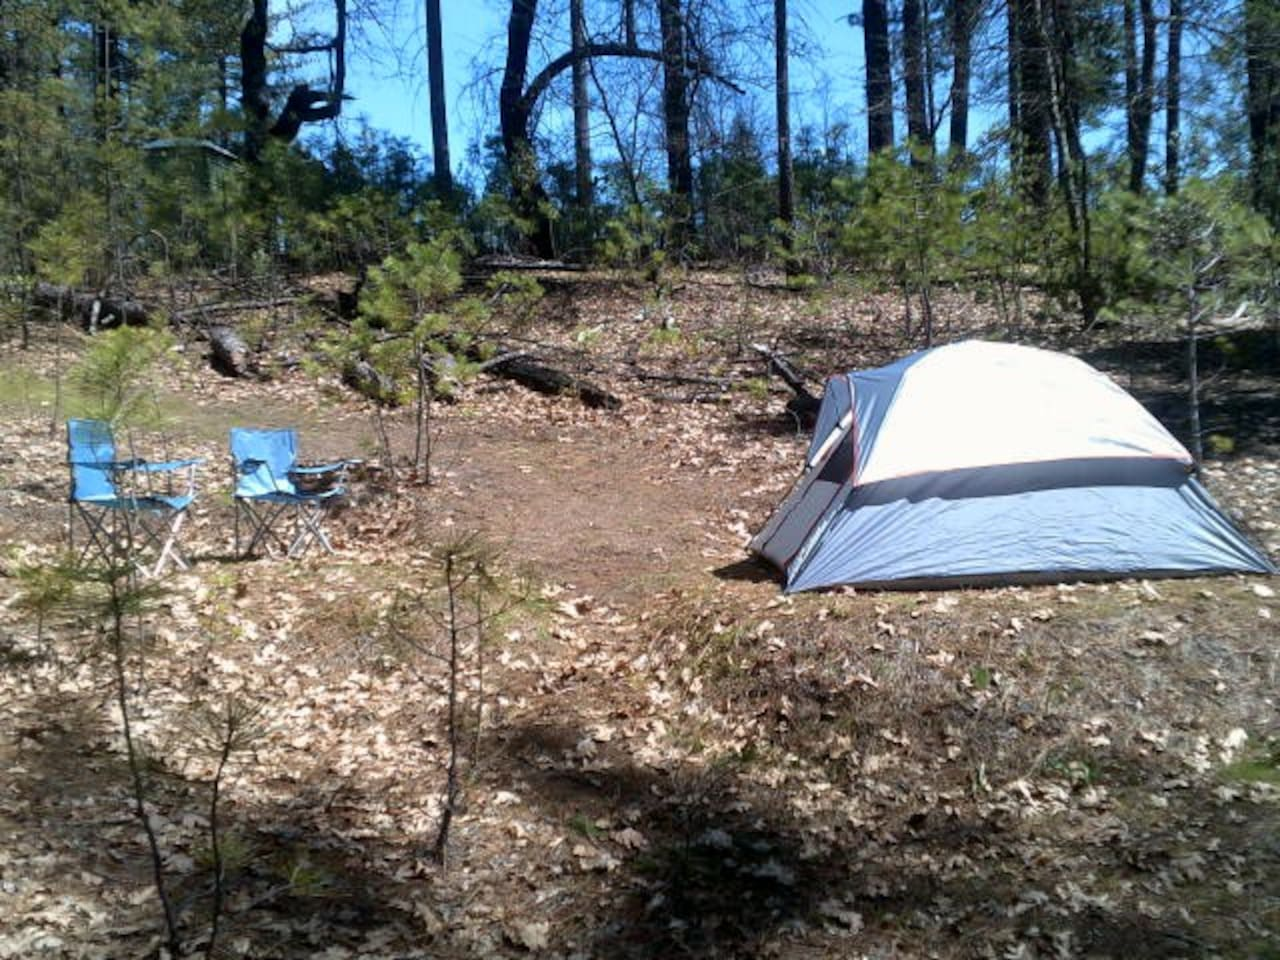 3 person tent is 7'x7' w/2 chairs